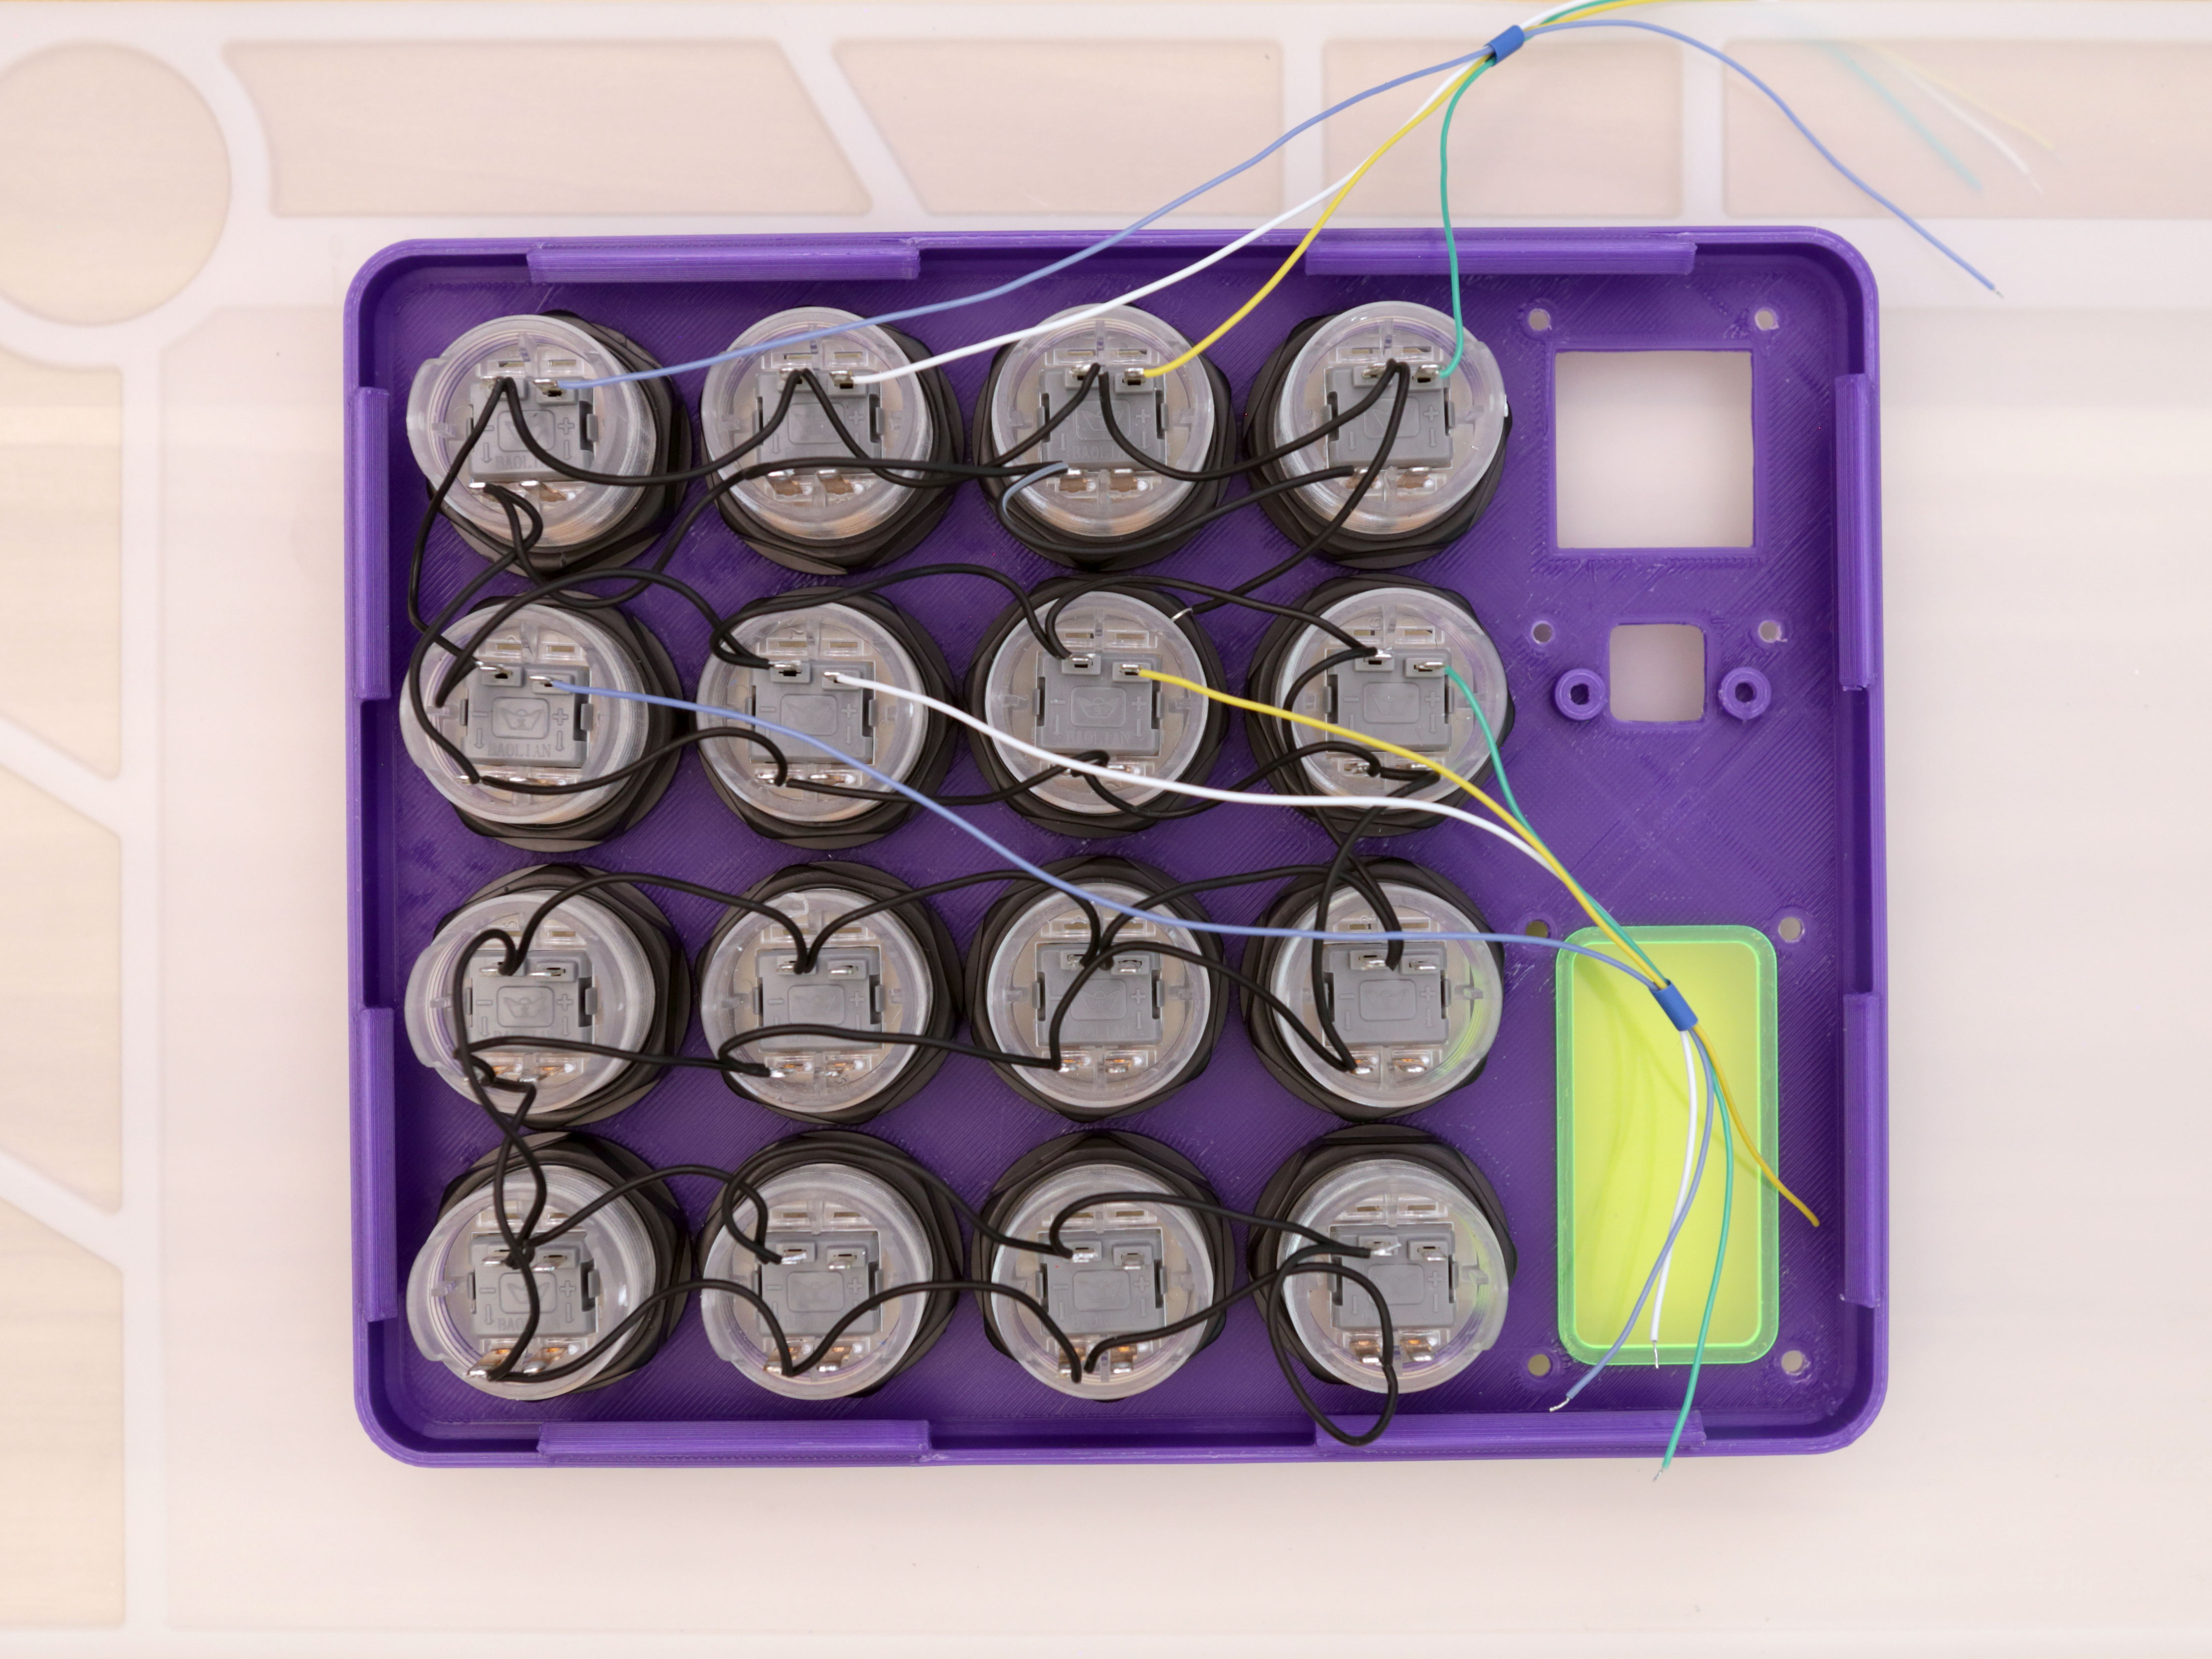 3d_printing_buttons-wired-5-8.jpg